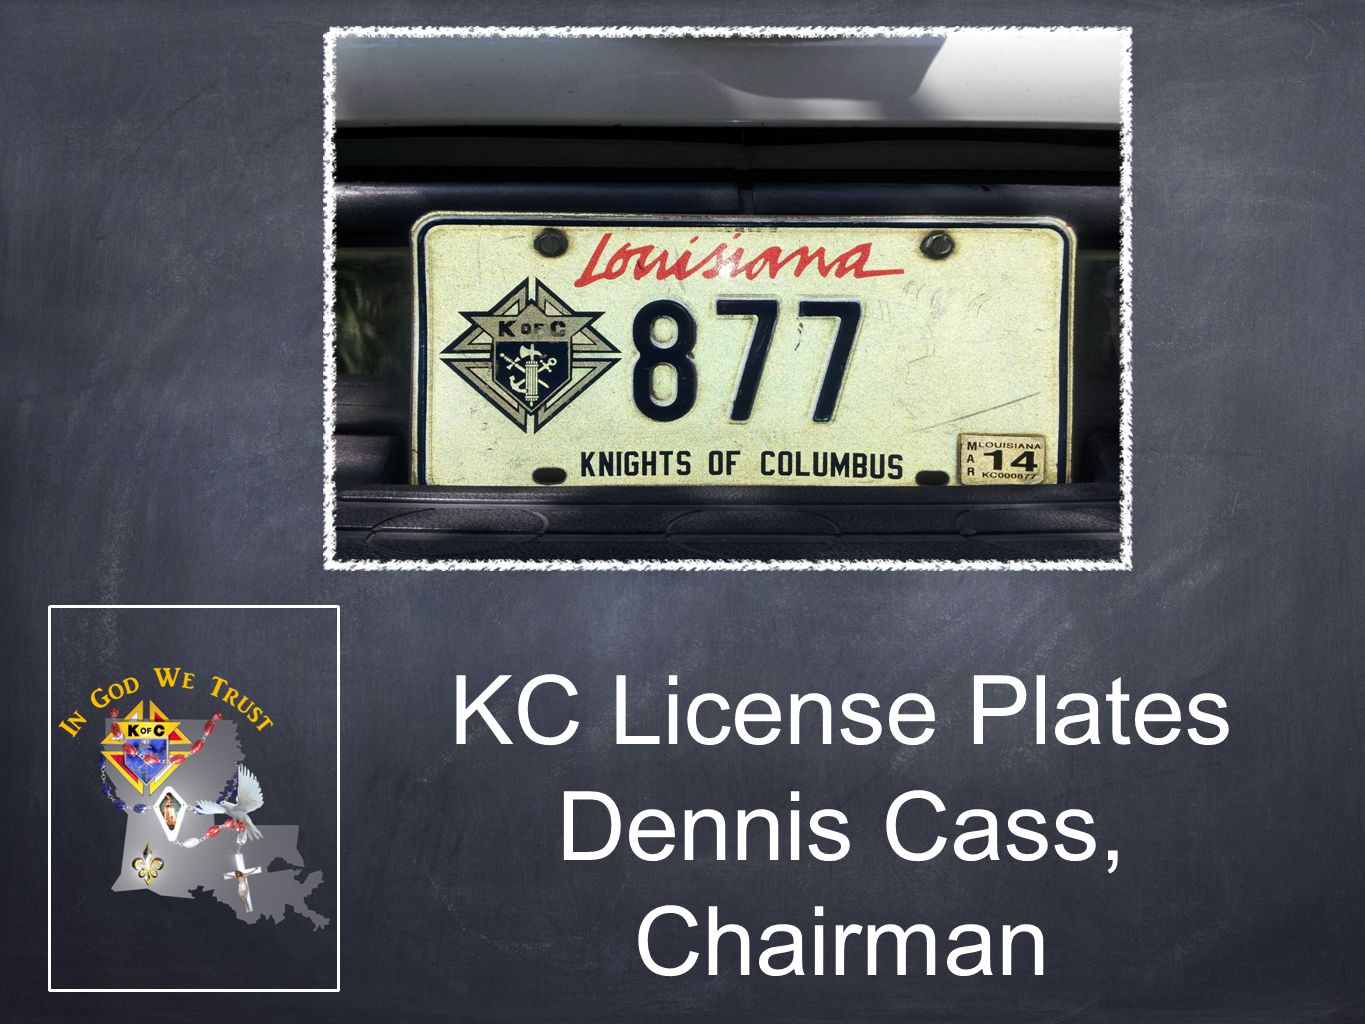 KC License Plates Dennis Cass, Chairman